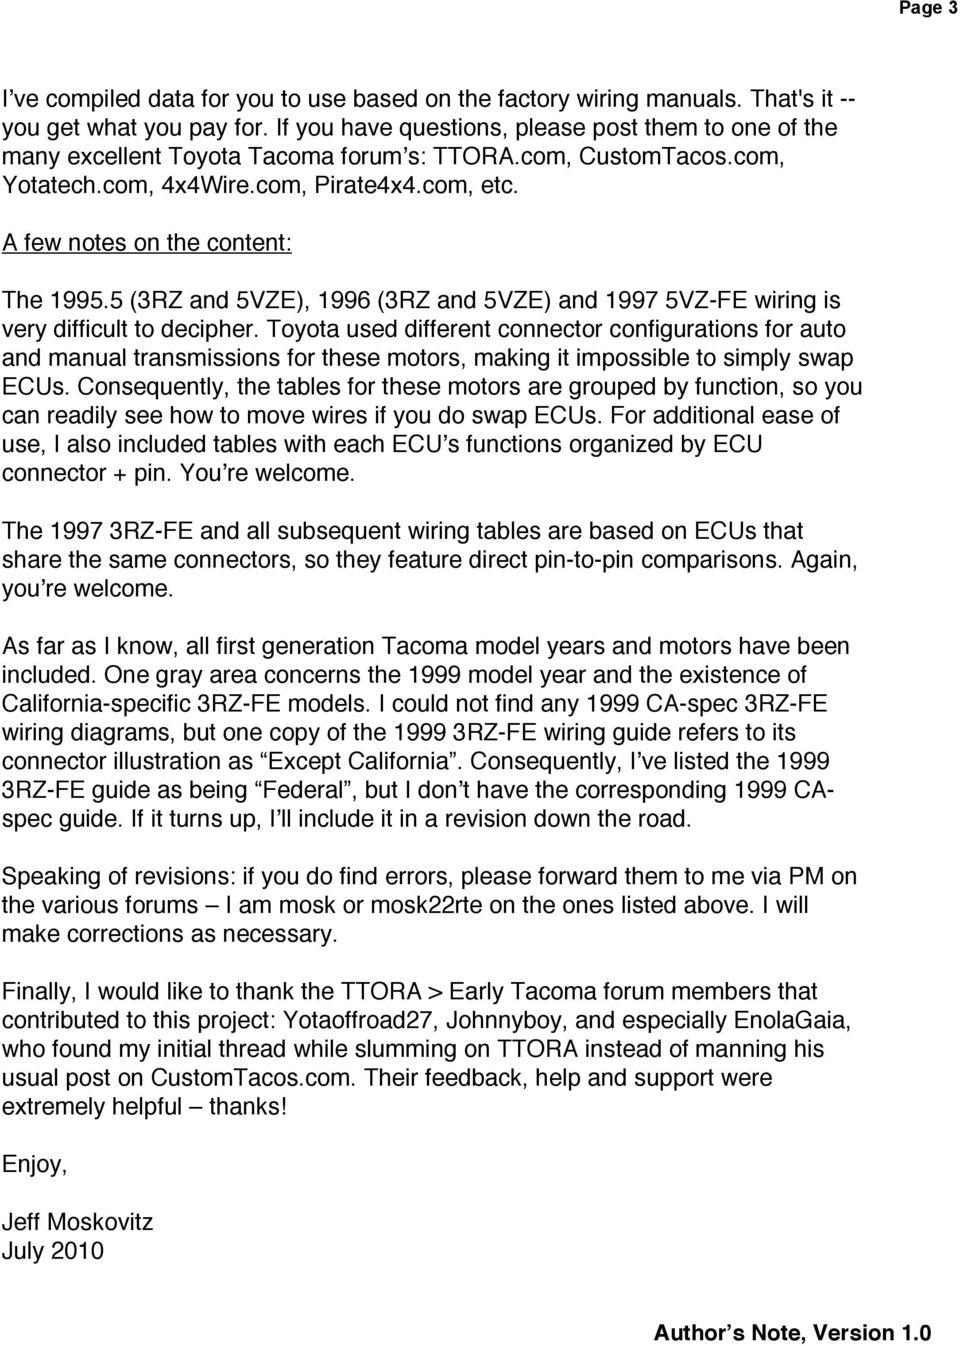 Ecu Pinout And Wiring Comparisons Toyota Tacoma Trucks Pdf 2004 Color Code A Few Notes On The Content 19955 3rz 5vze 1996